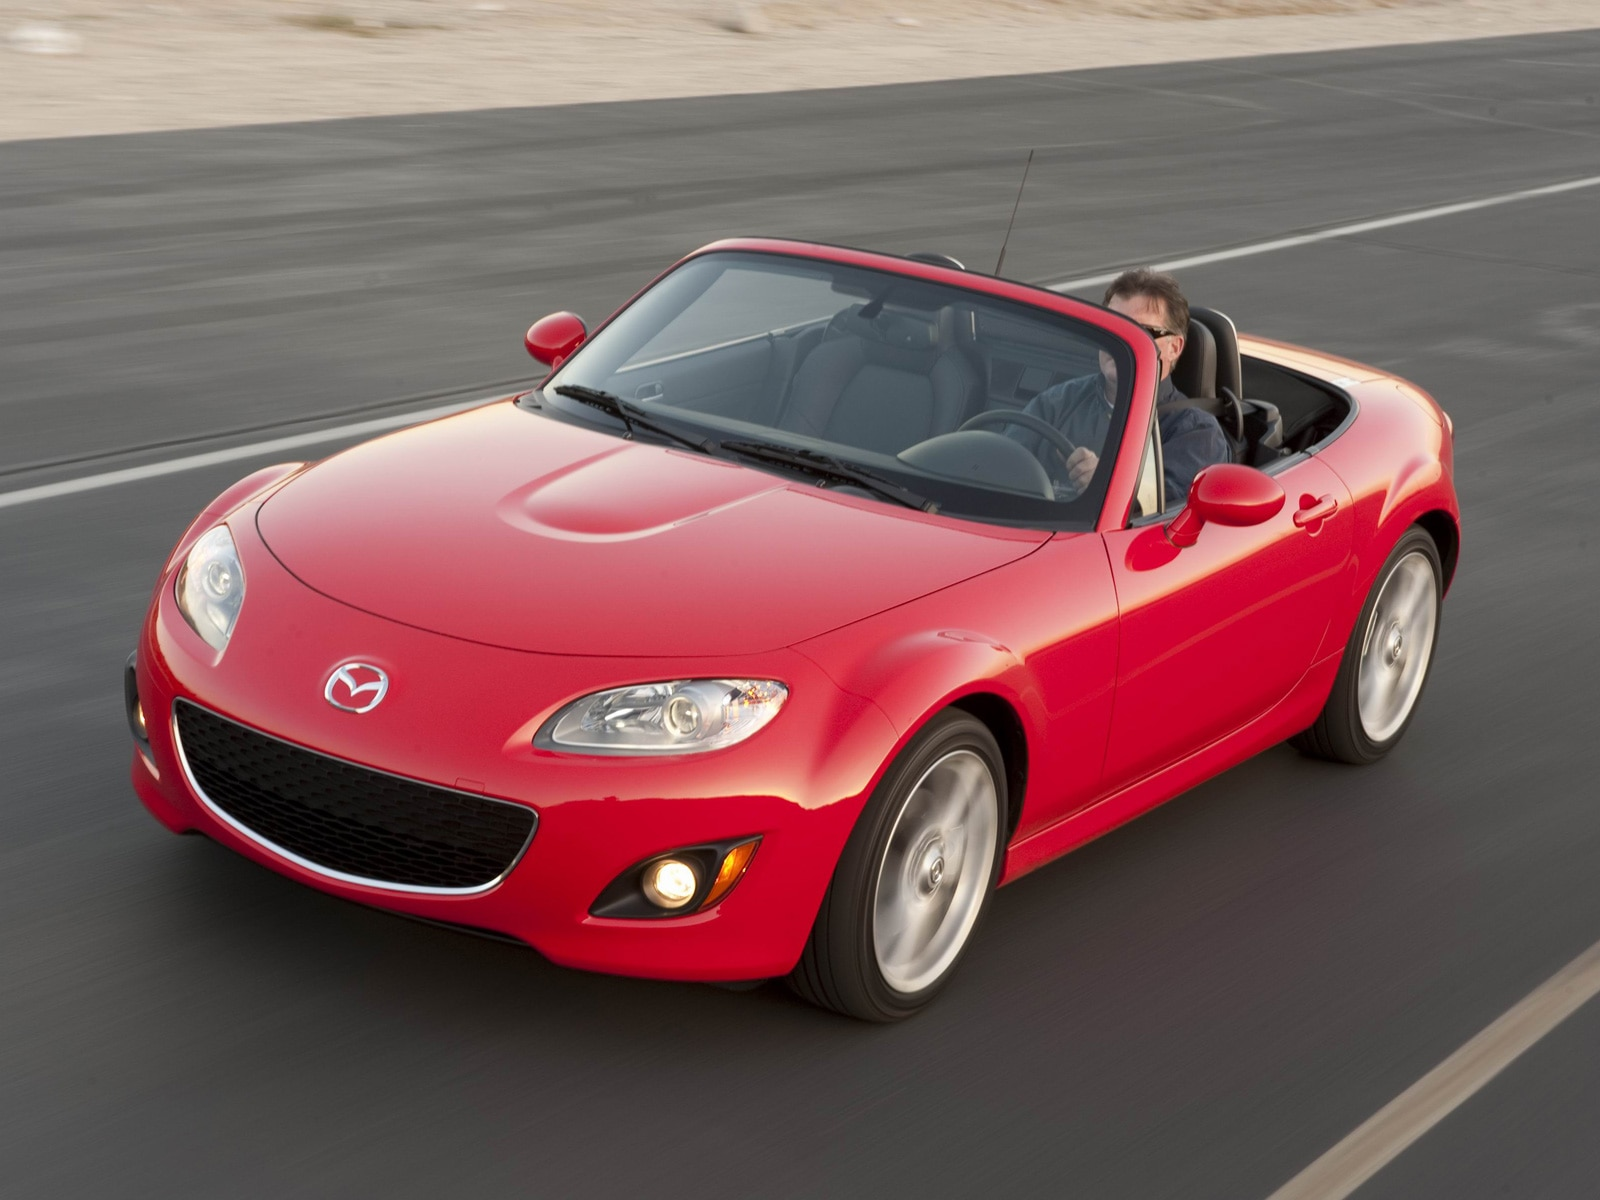 0911 03 Z 2010 Mazda MX 5 Miata Grand Touring Front Three Quarter View